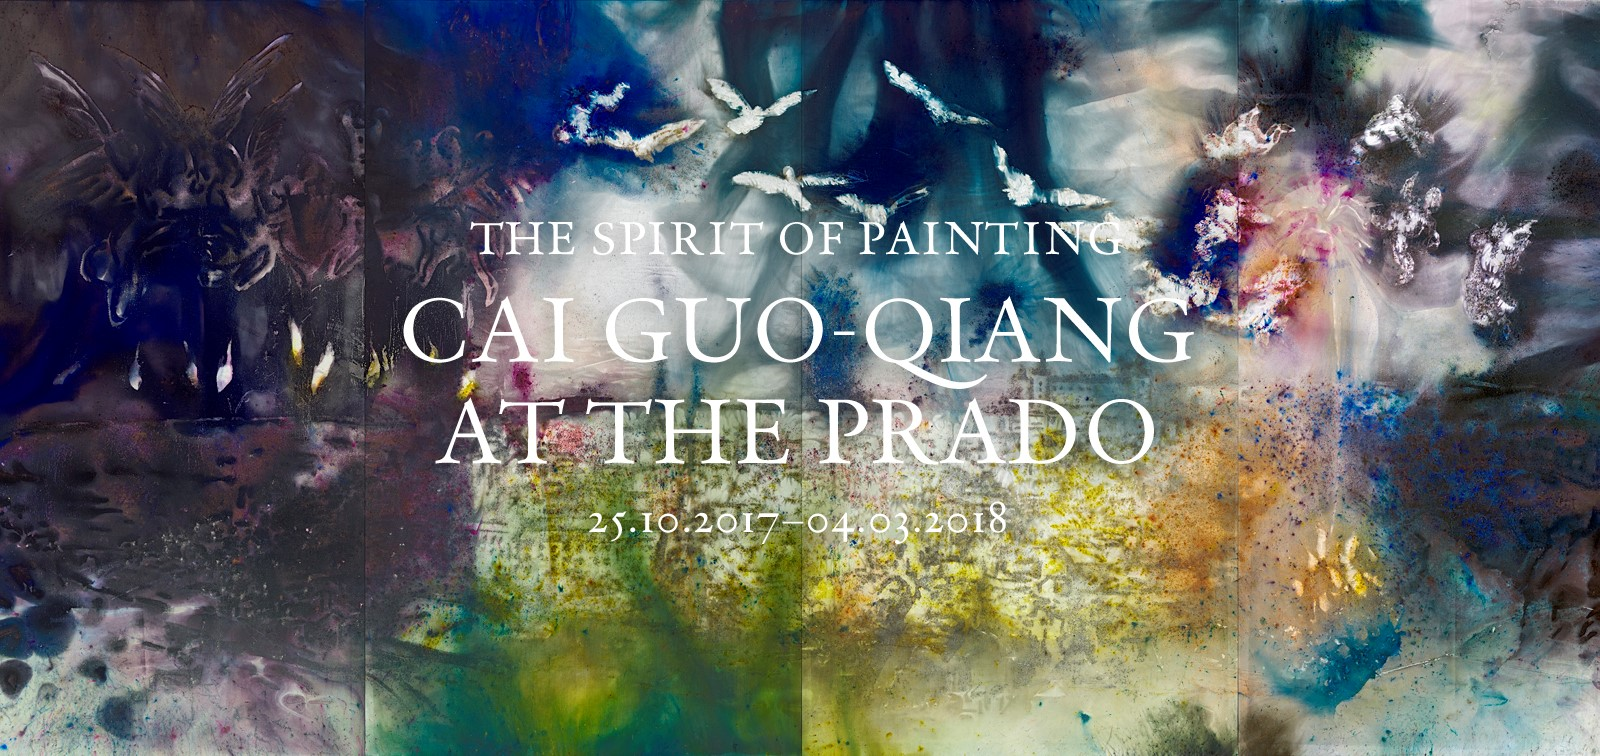 Exhibition. The Spirit of Painting. Cai Guo-Qiang at the Prado